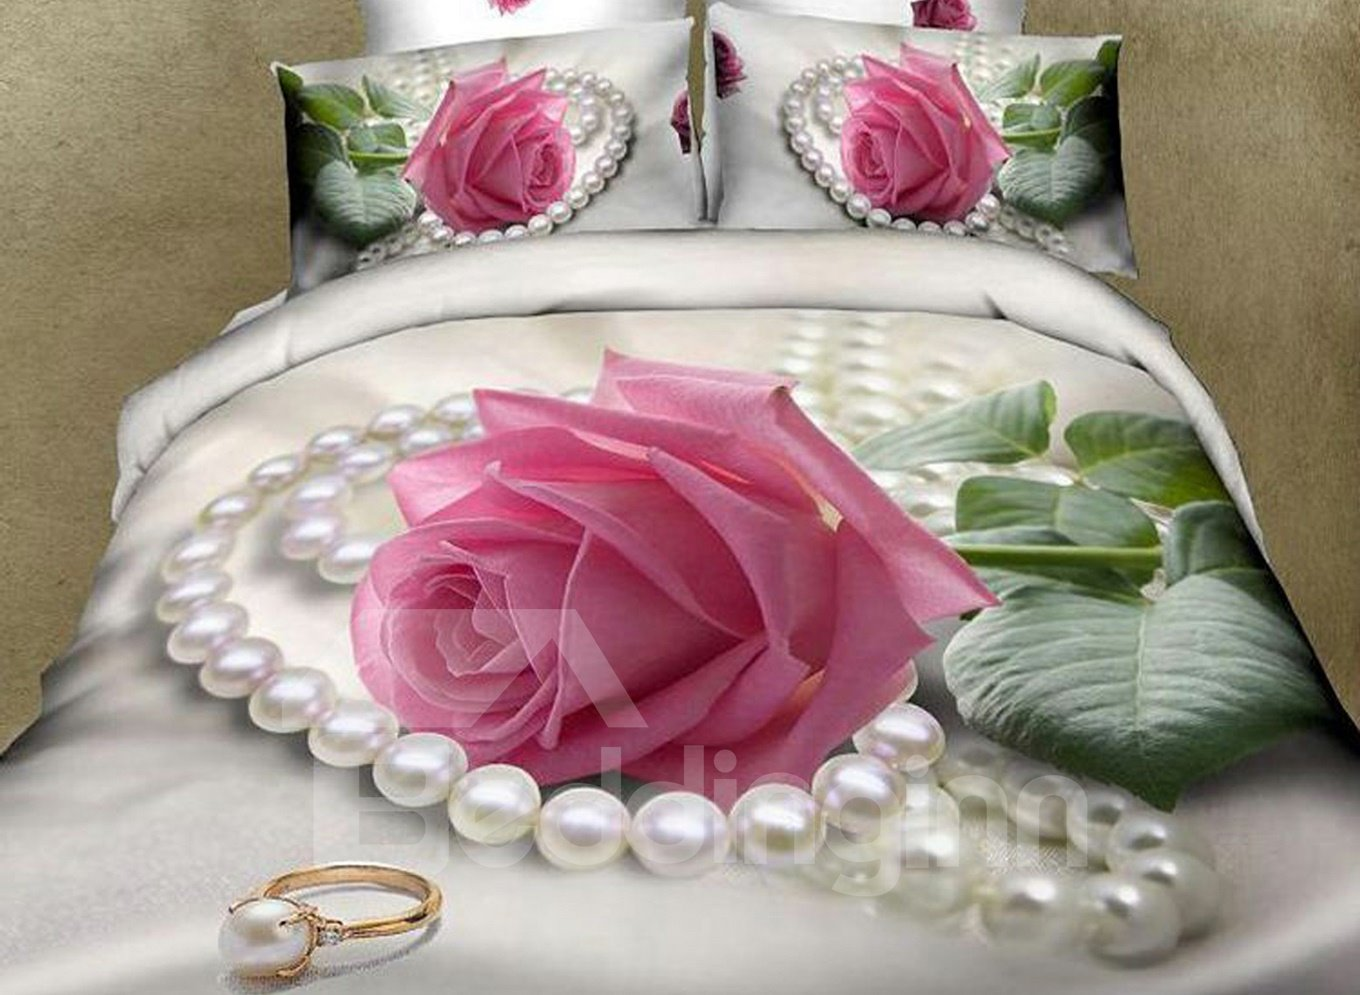 Charming Pink Rose and Pearl Print 4-Piece Cotton Duvet Cover Sets